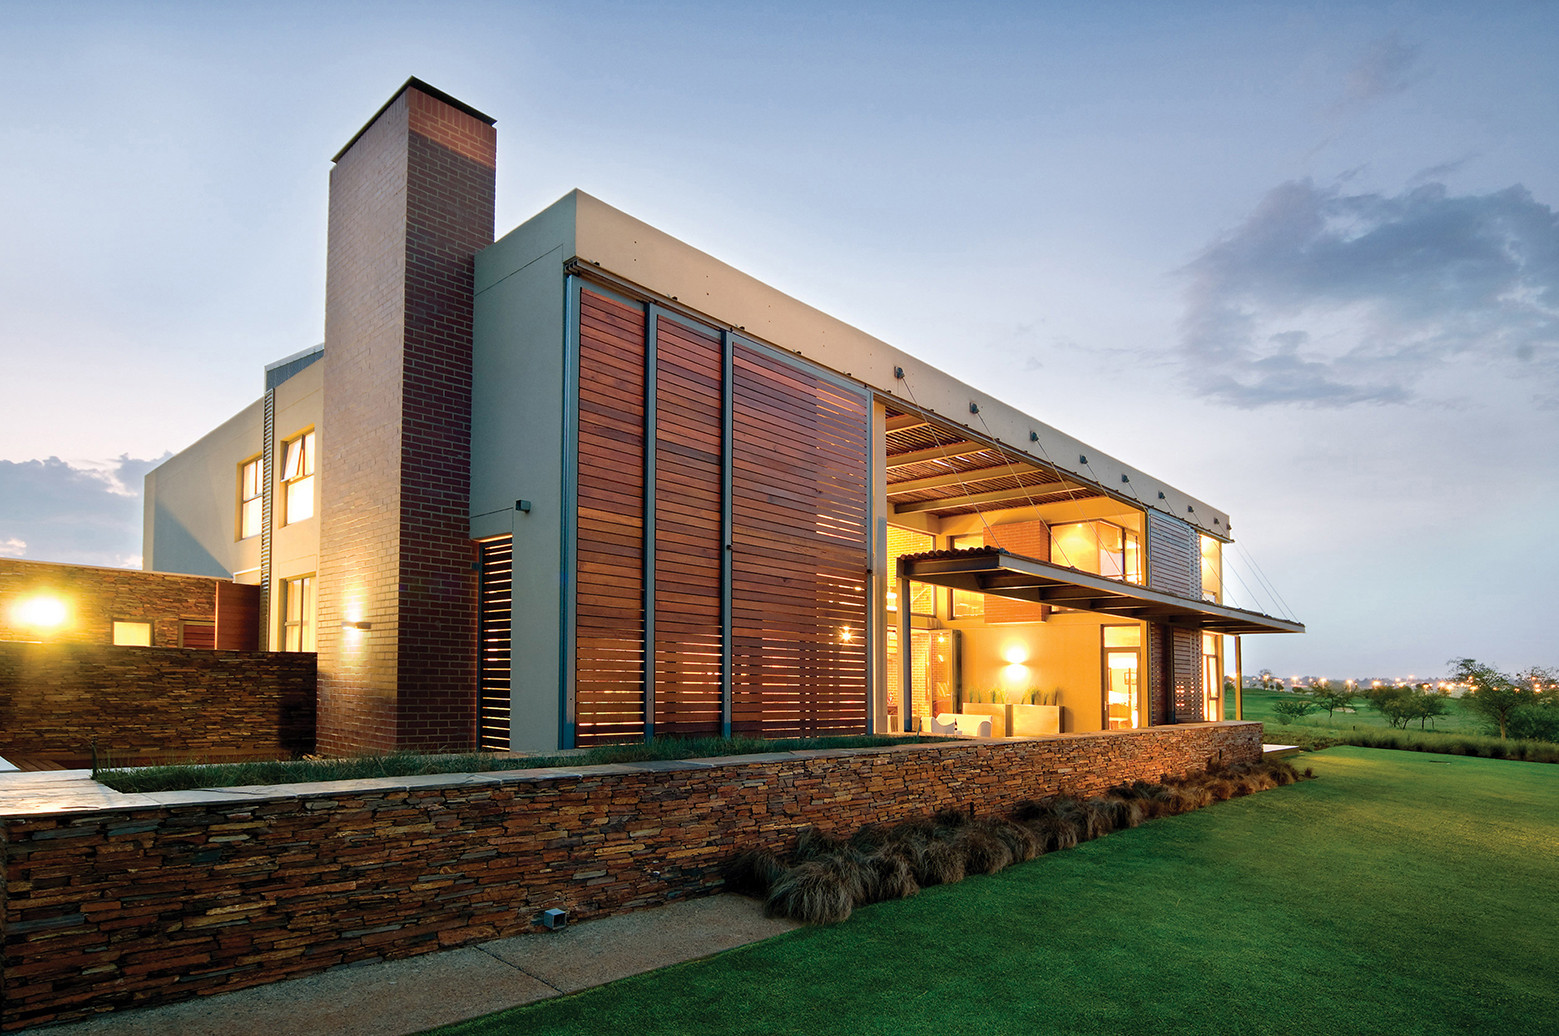 House steyn thomas gouws architects